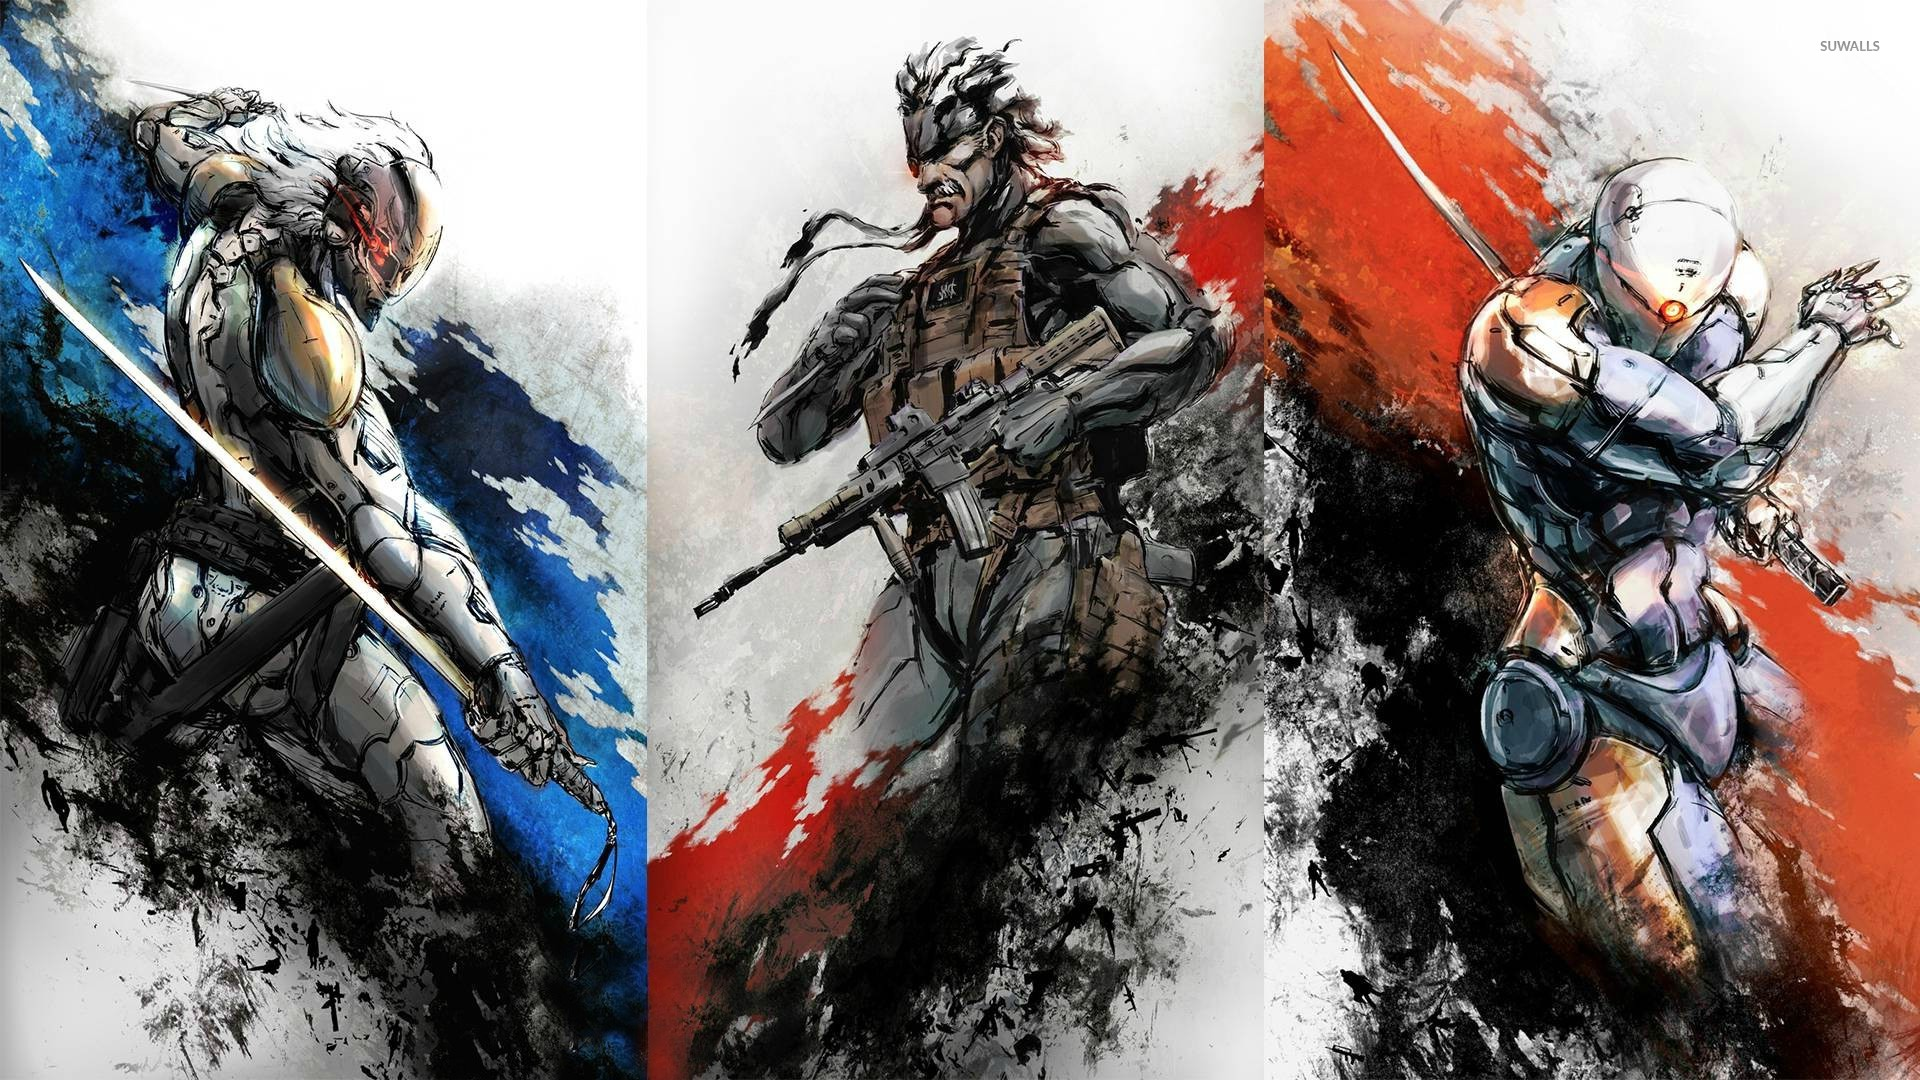 metal gear wallpaper - game wallpapers - #24465